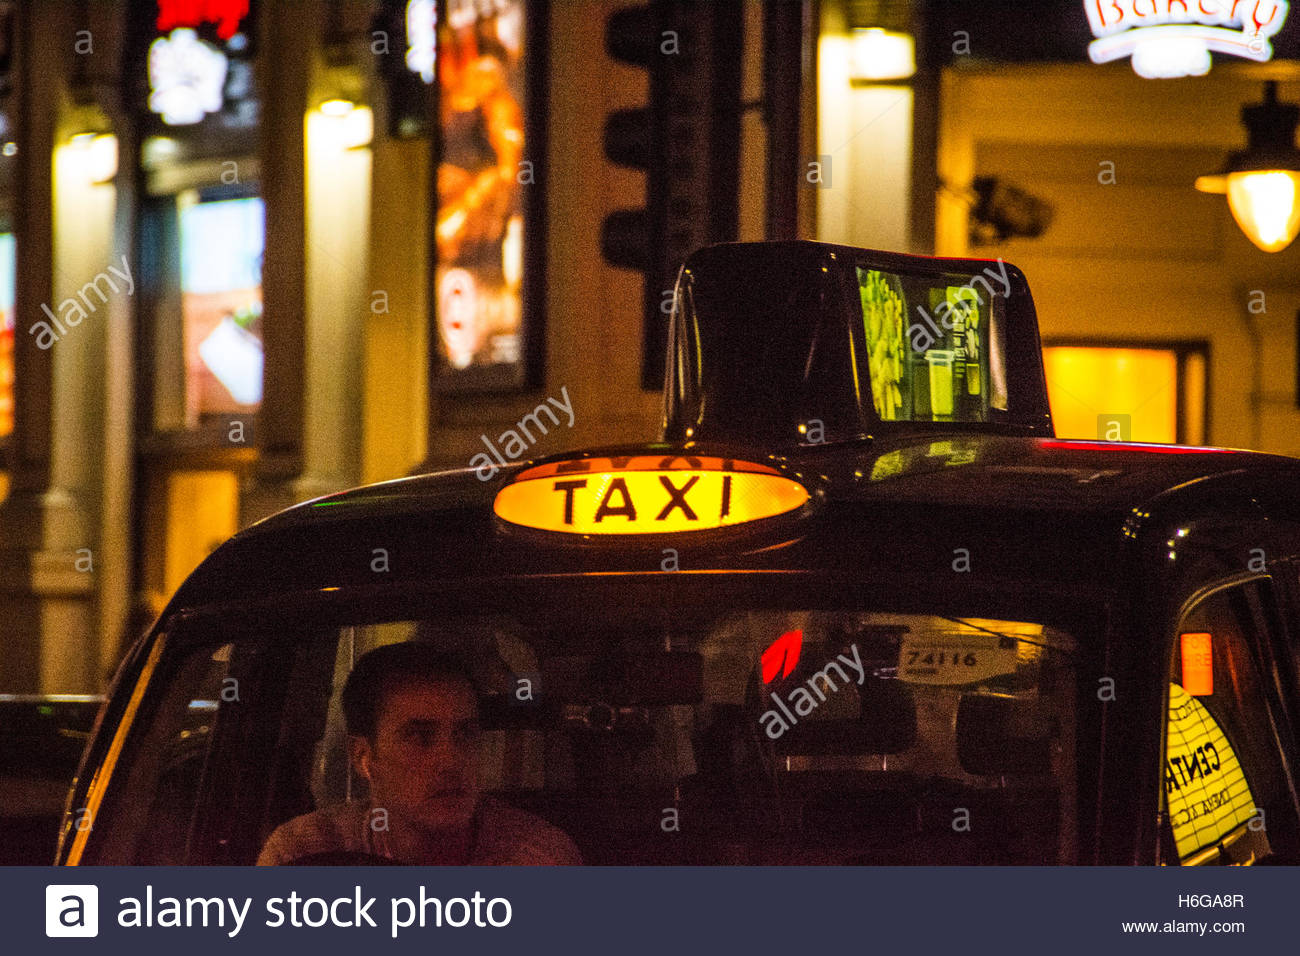 Black taxi cab sign in Chinatown, Soho, Central London, UK - Stock Image